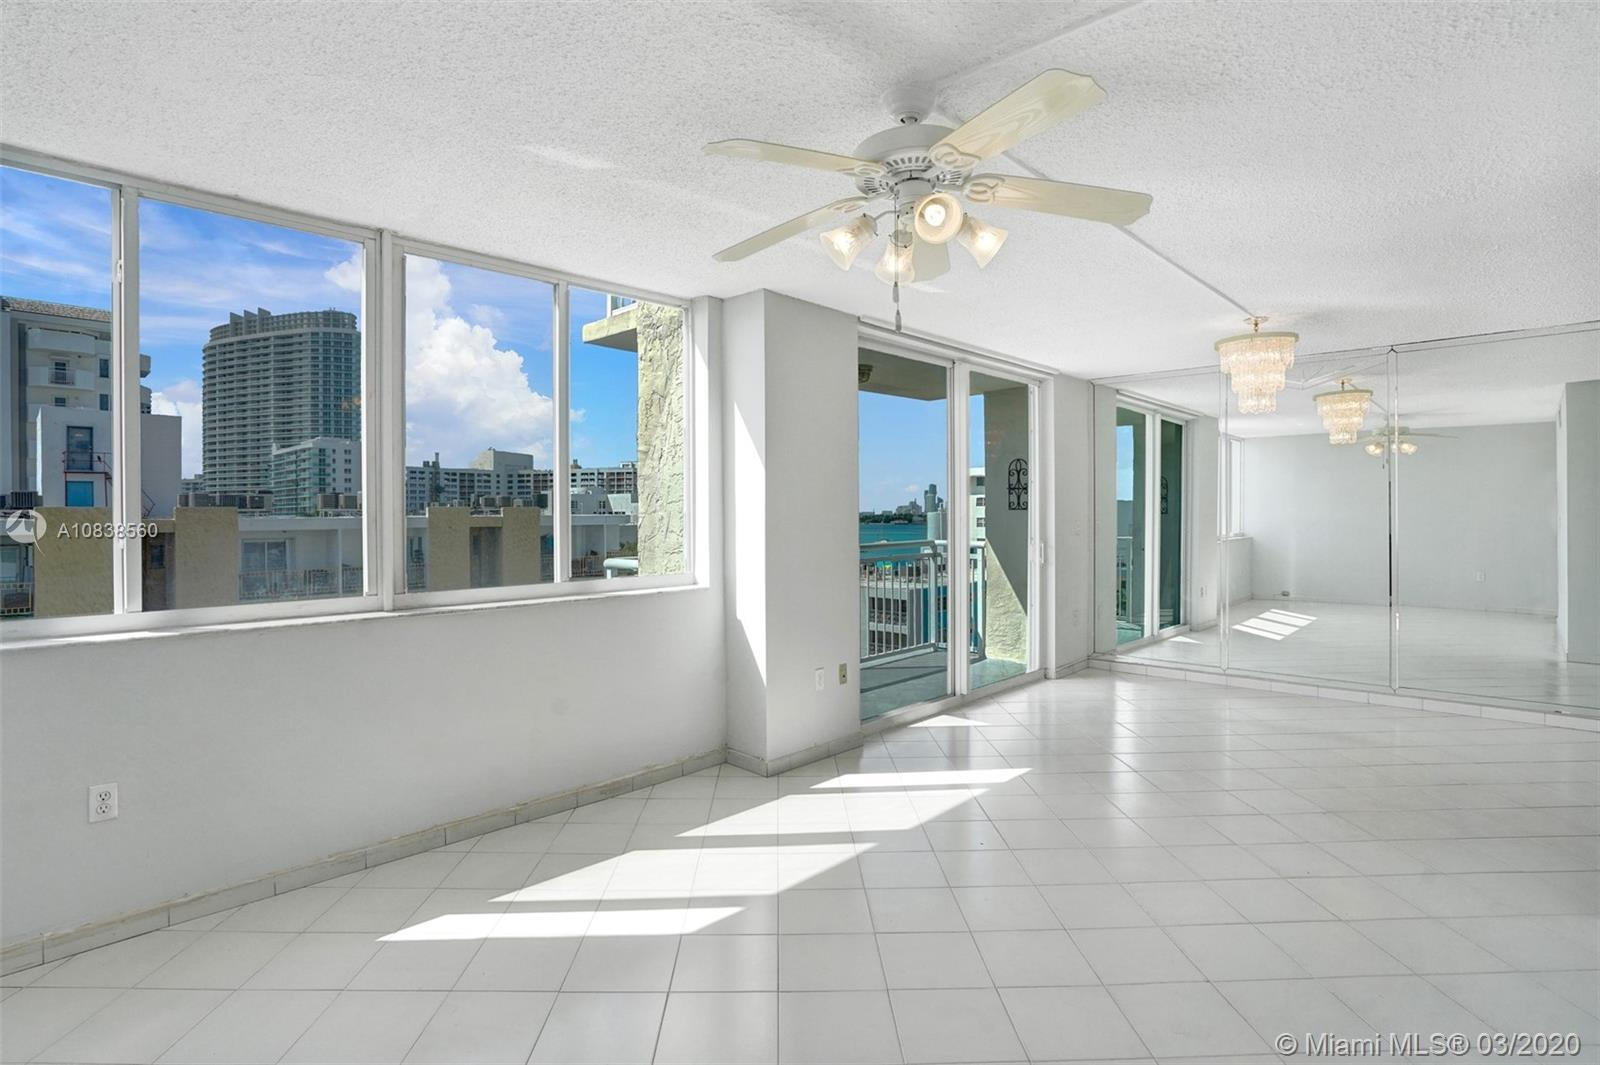 1345 Lincoln Rd 905, Miami Beach, FL, 33139